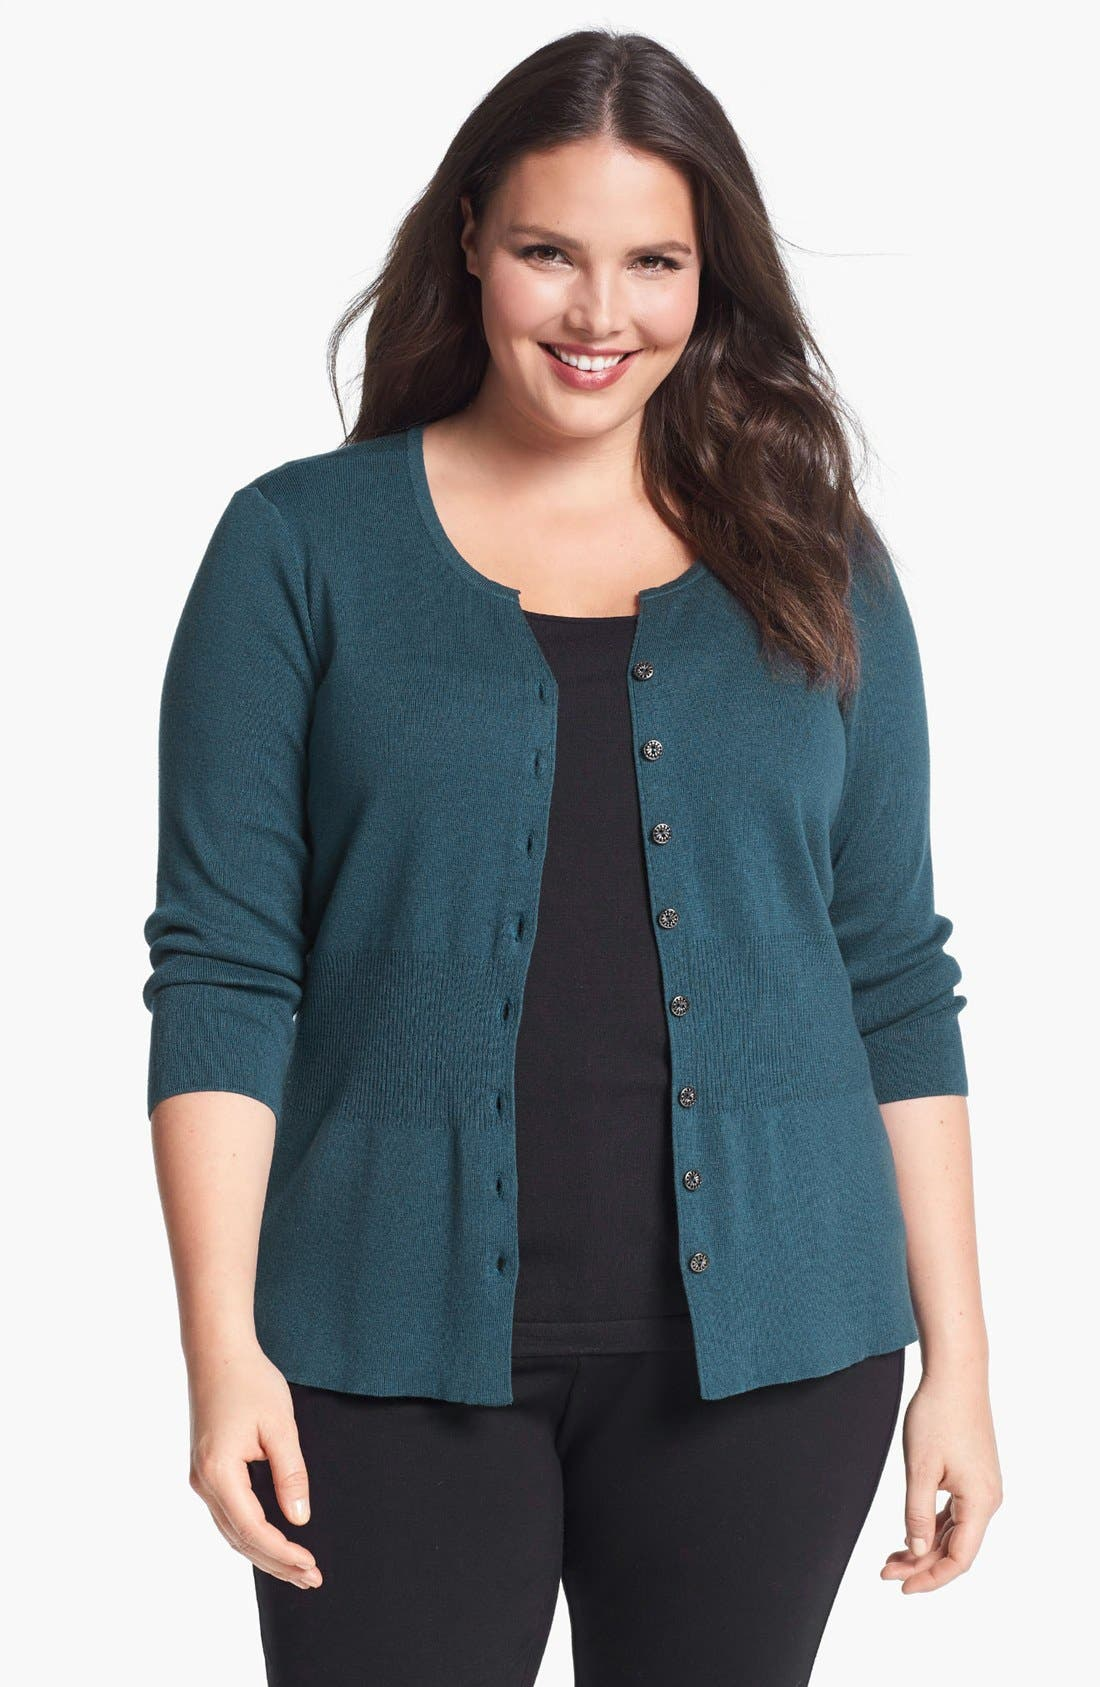 Alternate Image 1 Selected - NIC + ZOE 'Back of the Chair' Cardigan (Plus Size)